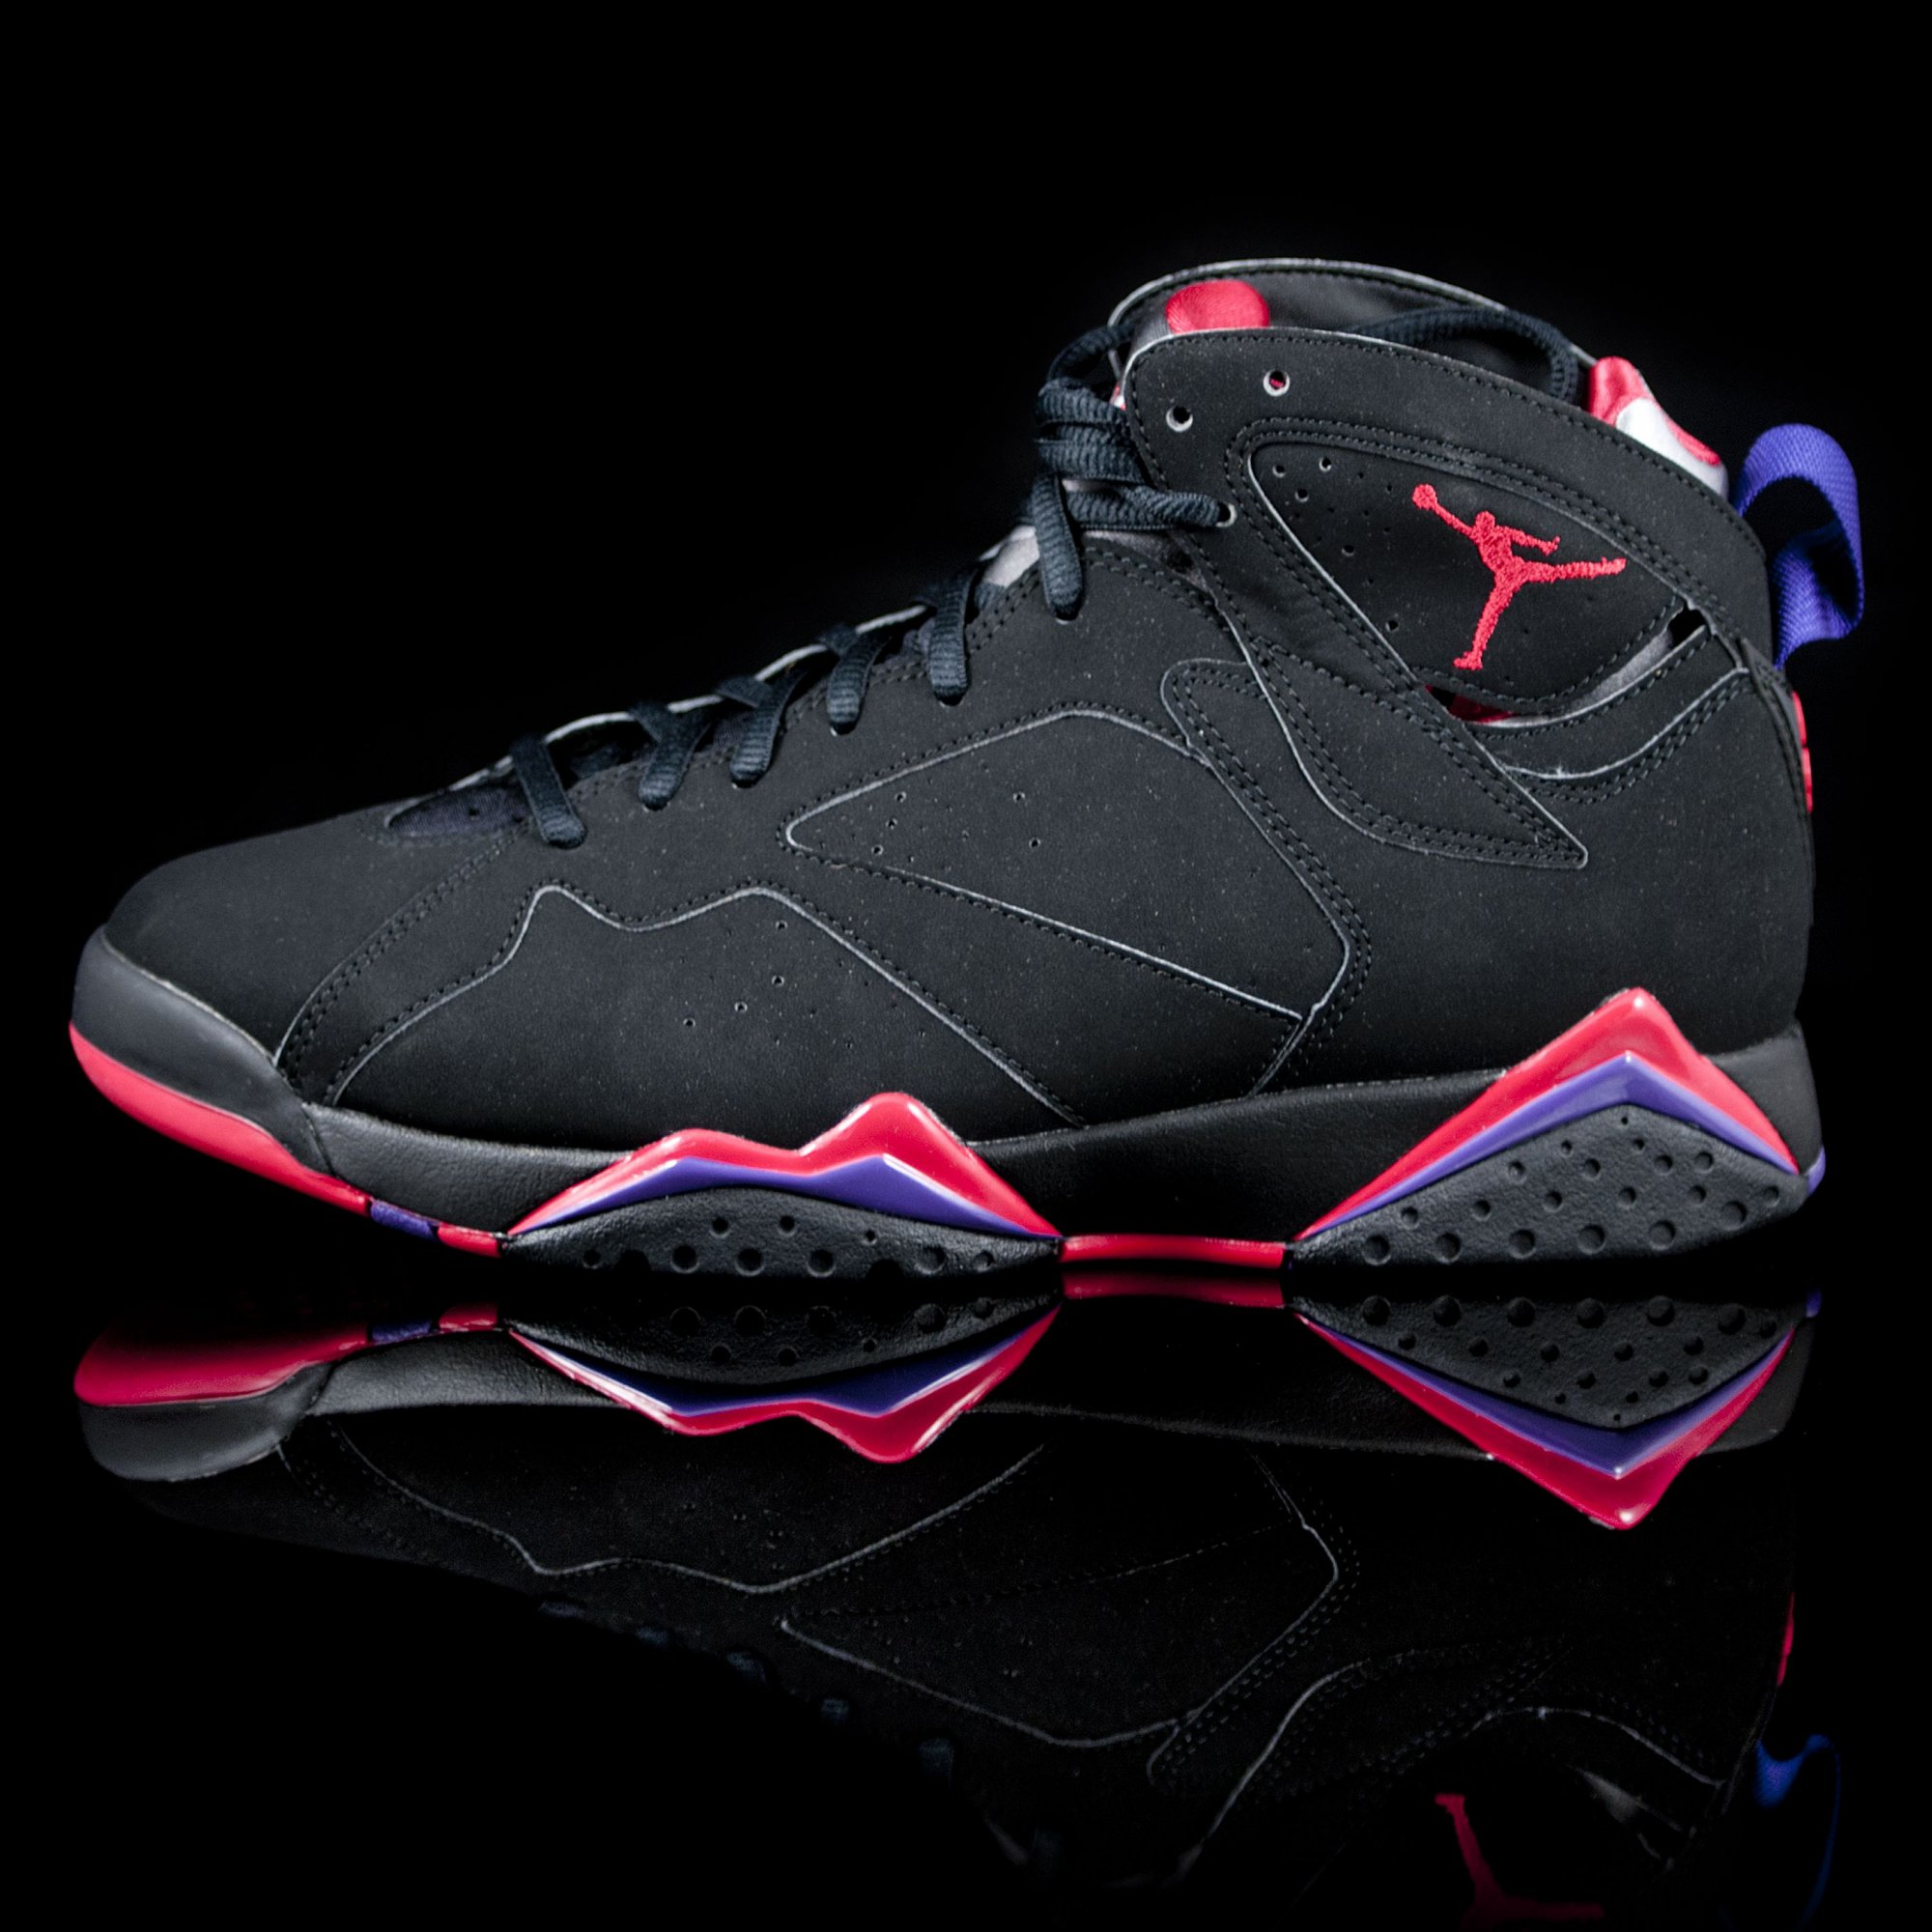 Top 10 Coolest Air Jordans Of All Time